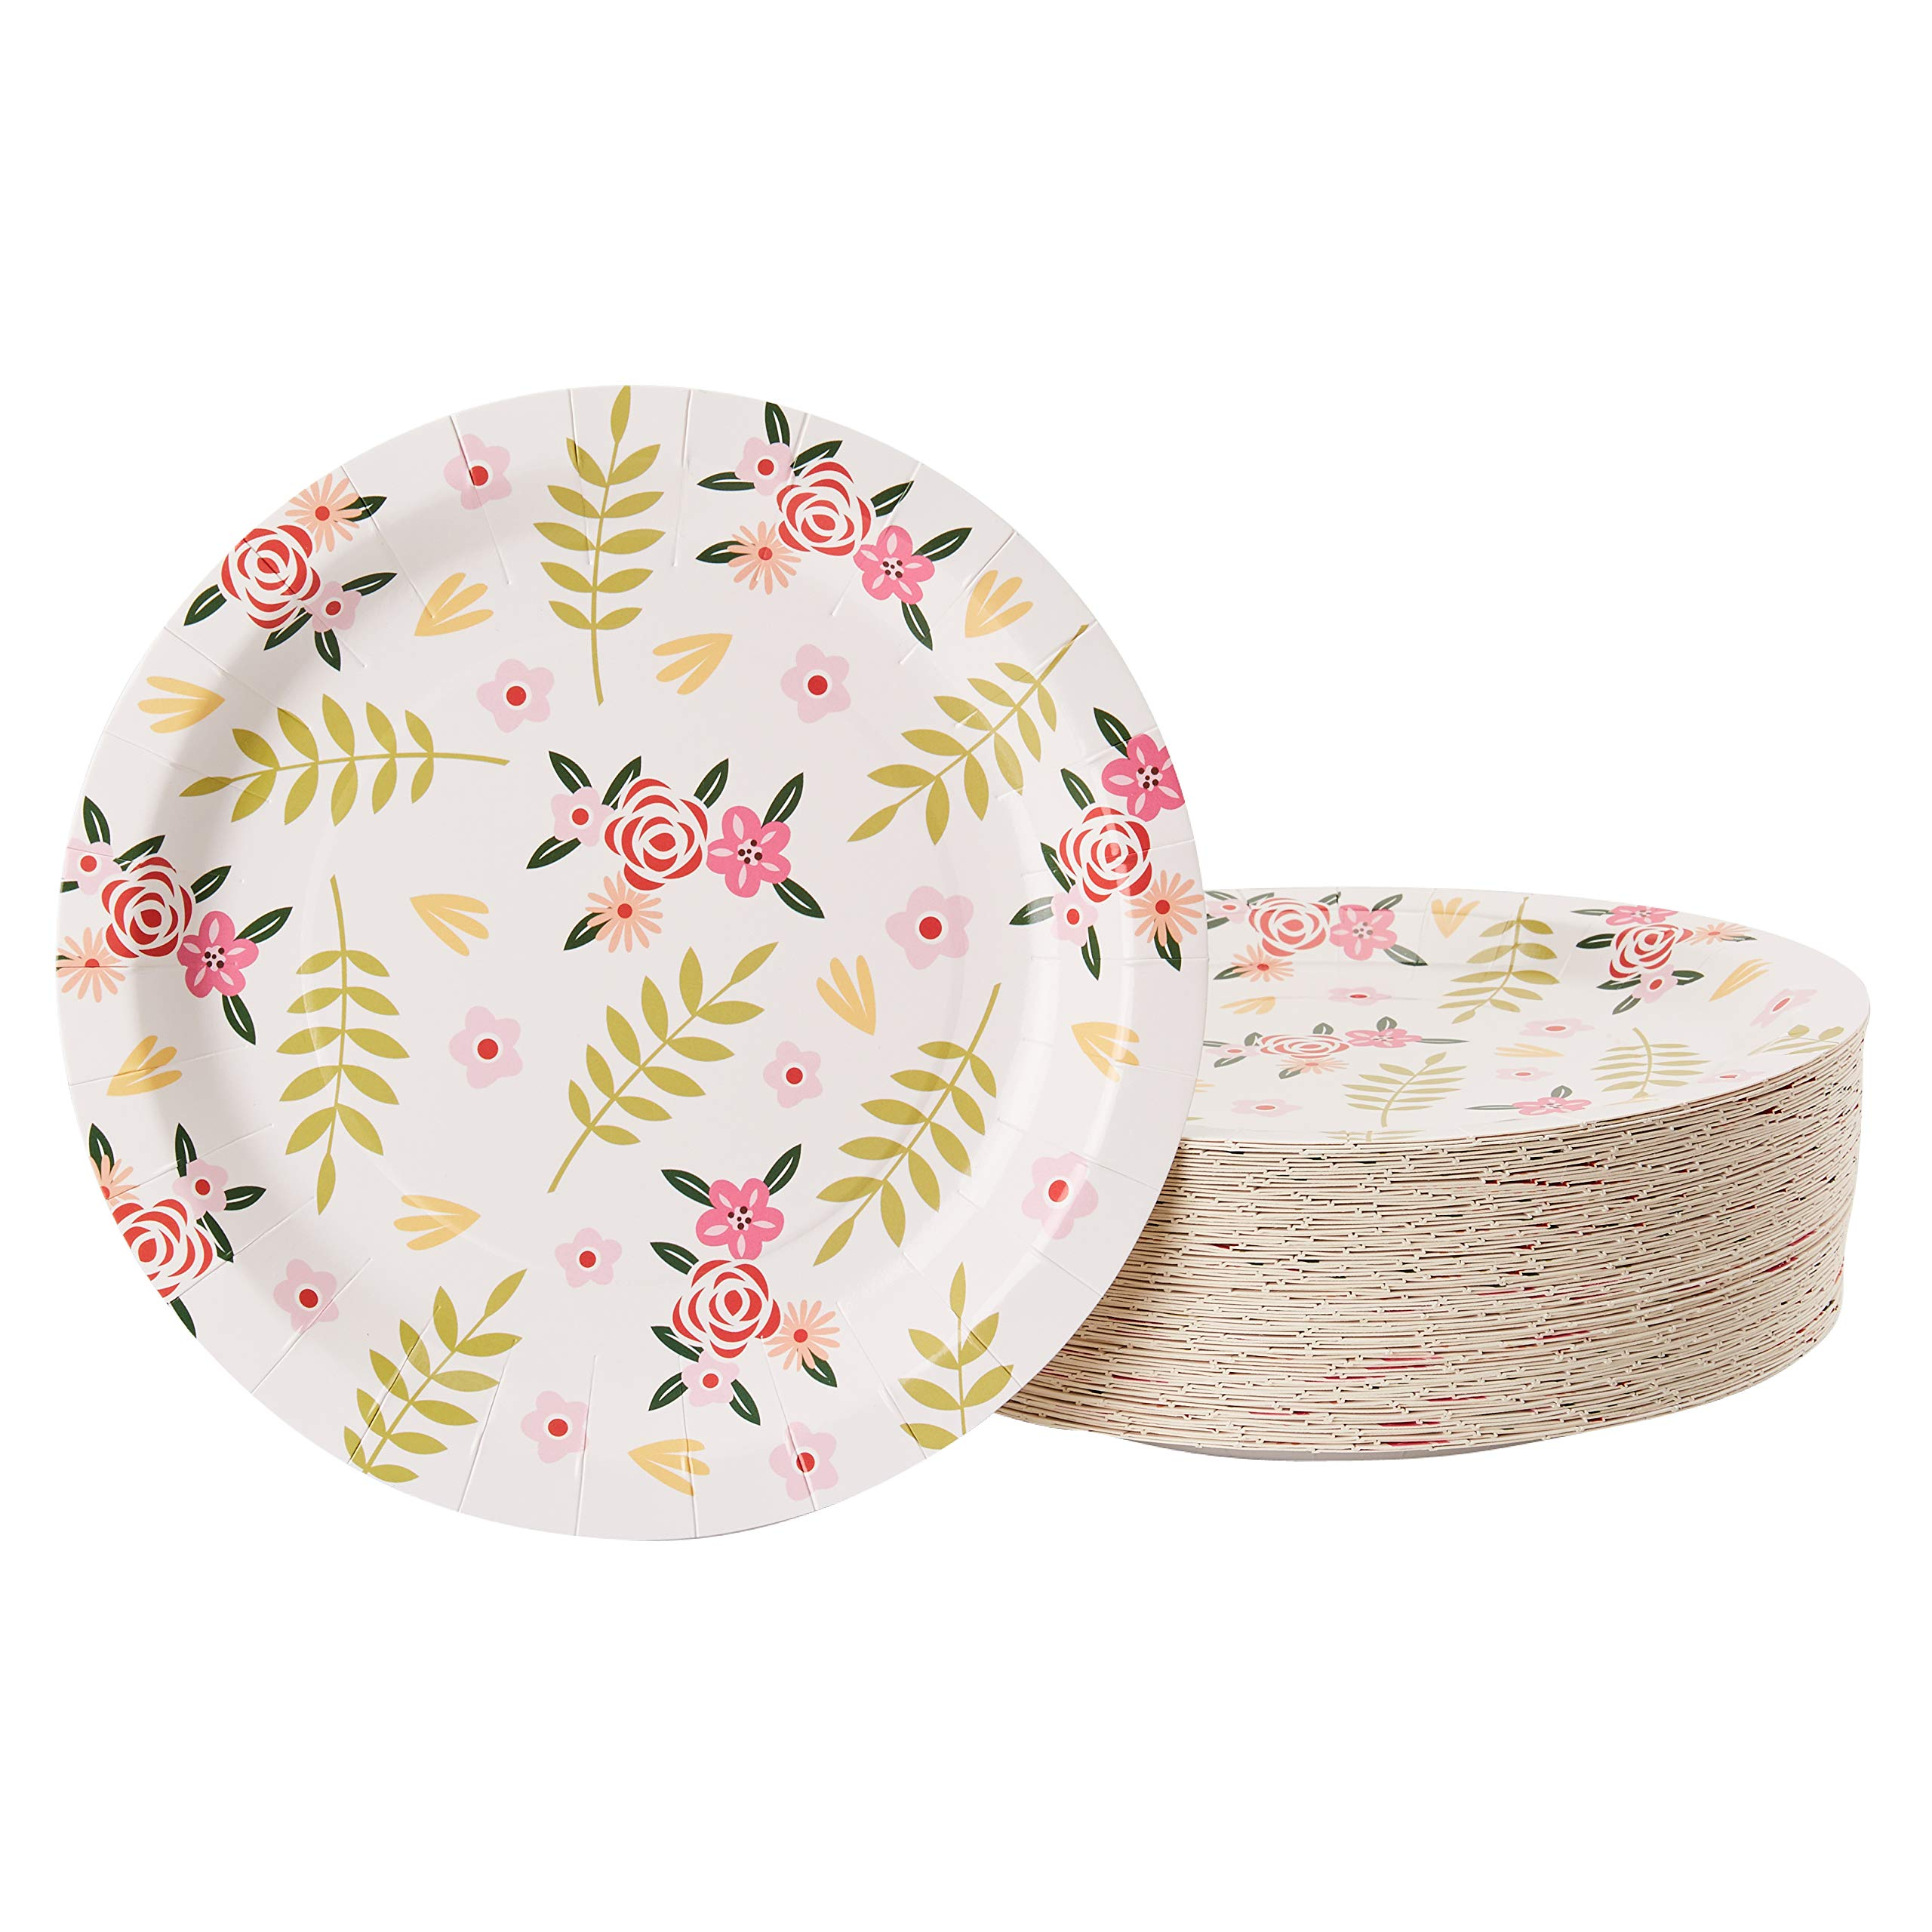 Floral Paper Plates - 80-Pack Disposable 9-Inch Floral Plates, Tea Party, Weddings, Bridal Shower Party Supplies, Vintage Flowers Print, Round Plates for Appetizer, Lunch, Dessert by Juvale